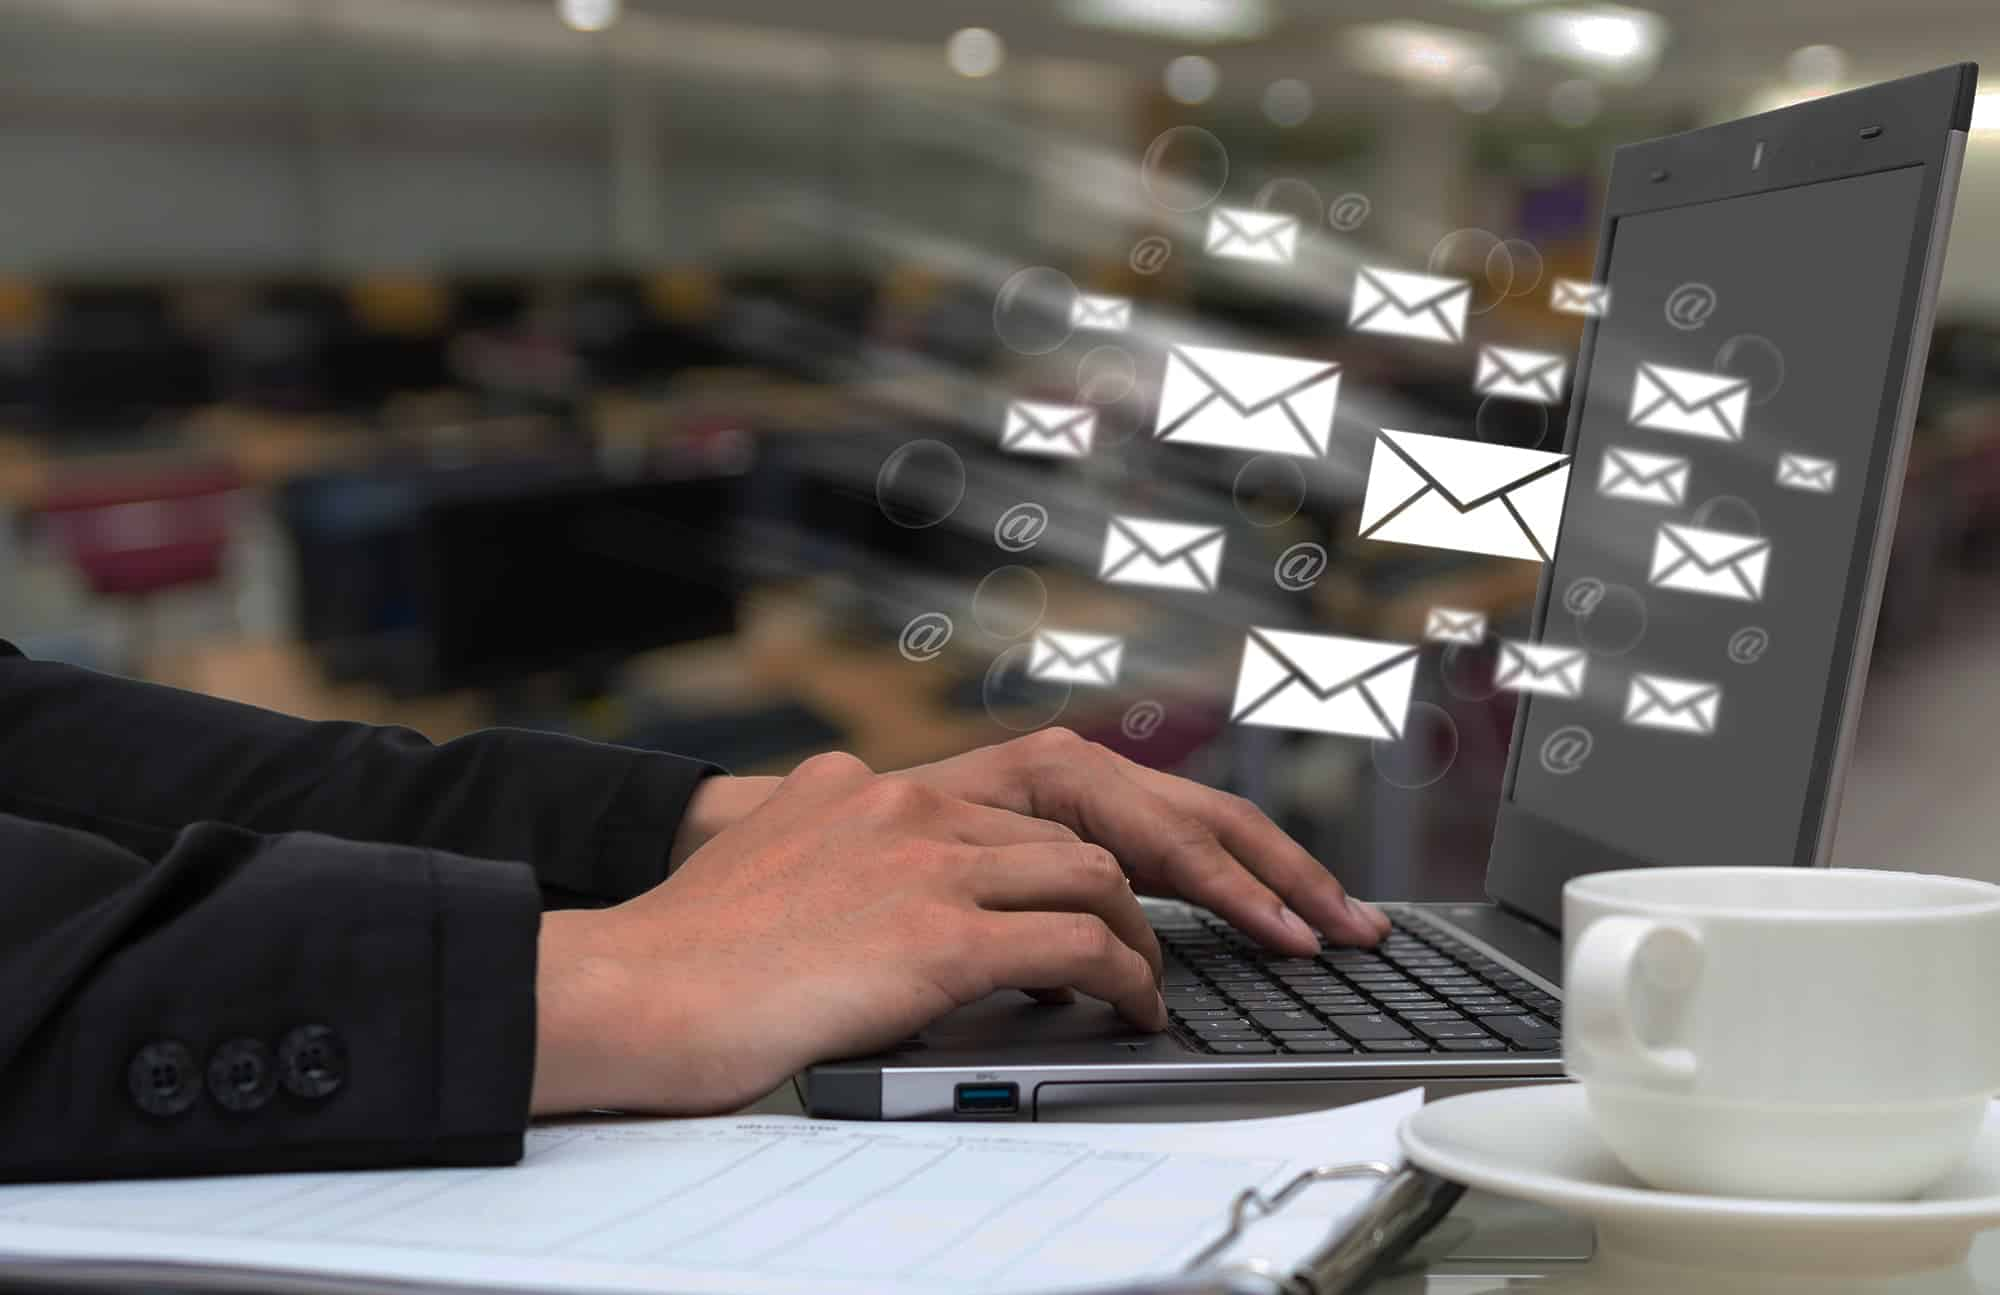 Marketing to Families - man typing on computer with images of direct mail being sent digitally as an email.